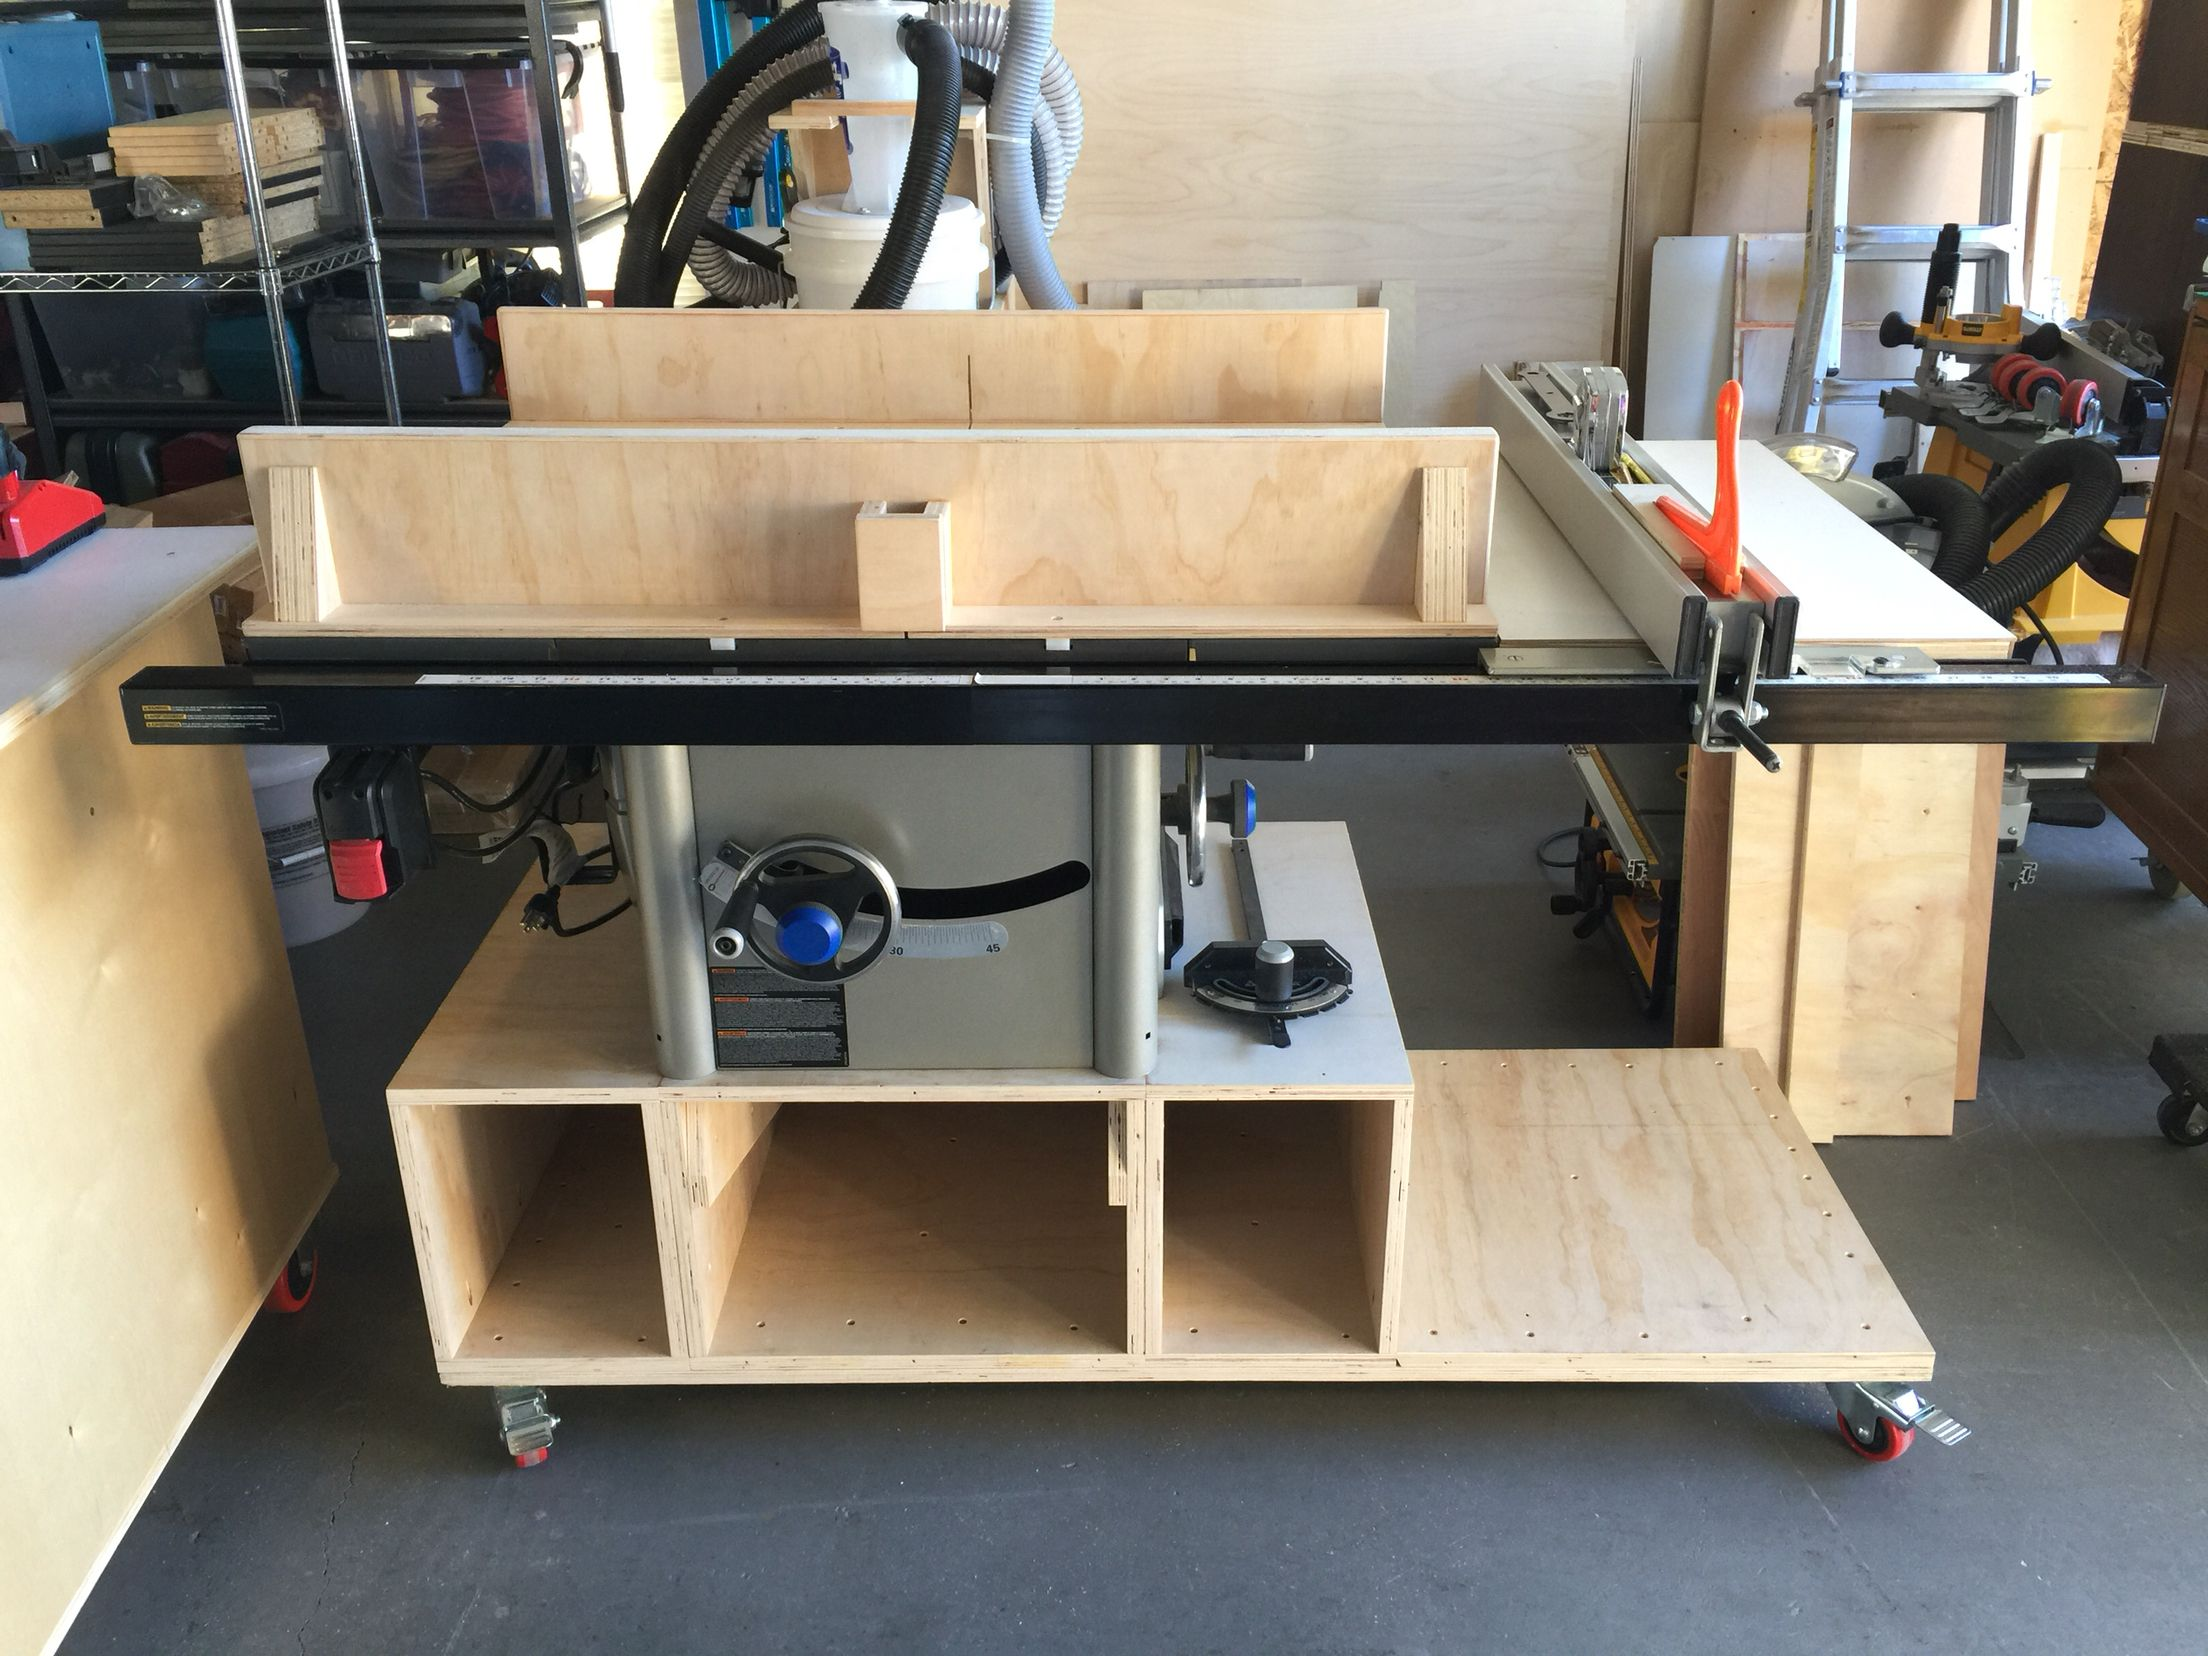 Table saw mobile base for Delta 36-725 | Table saw | Pinterest ...